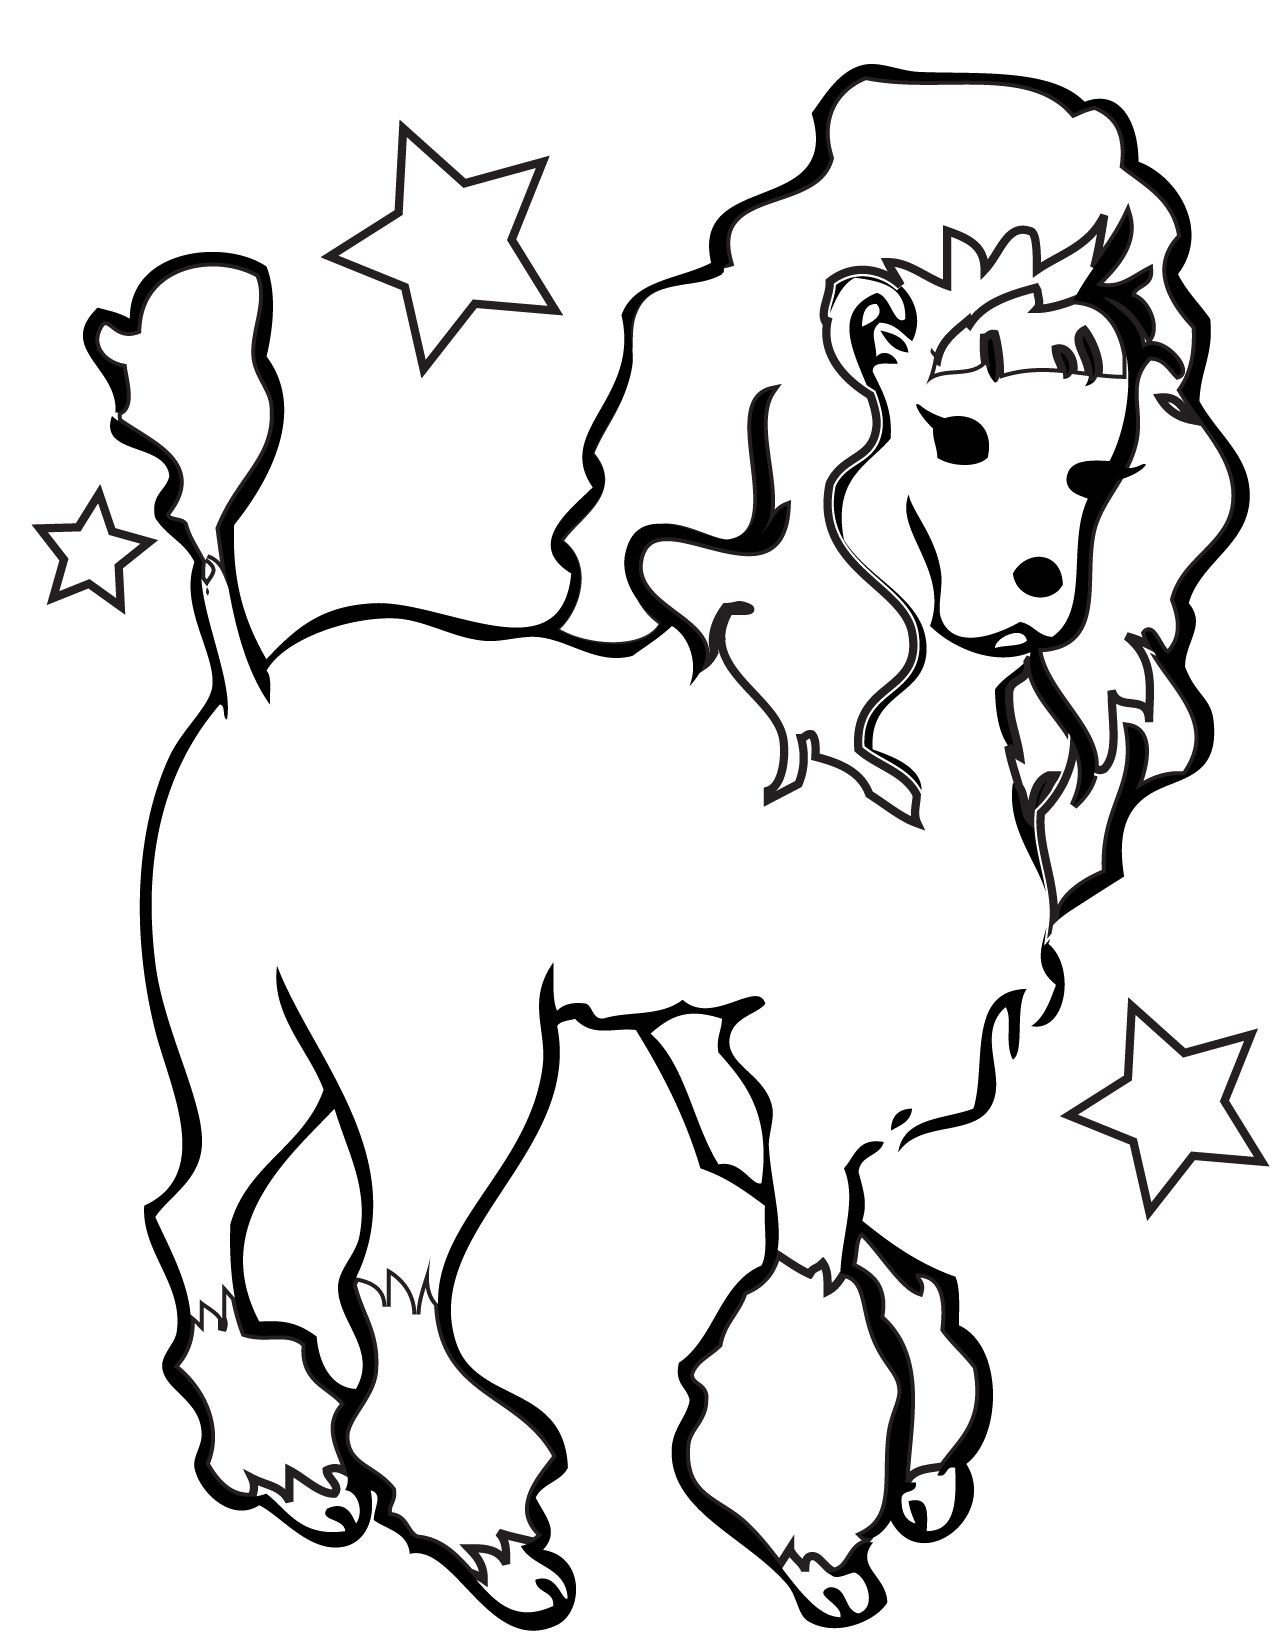 Beautiful Girl Dogs Coloring Page | Dog | Pinterest | Dog and Girls